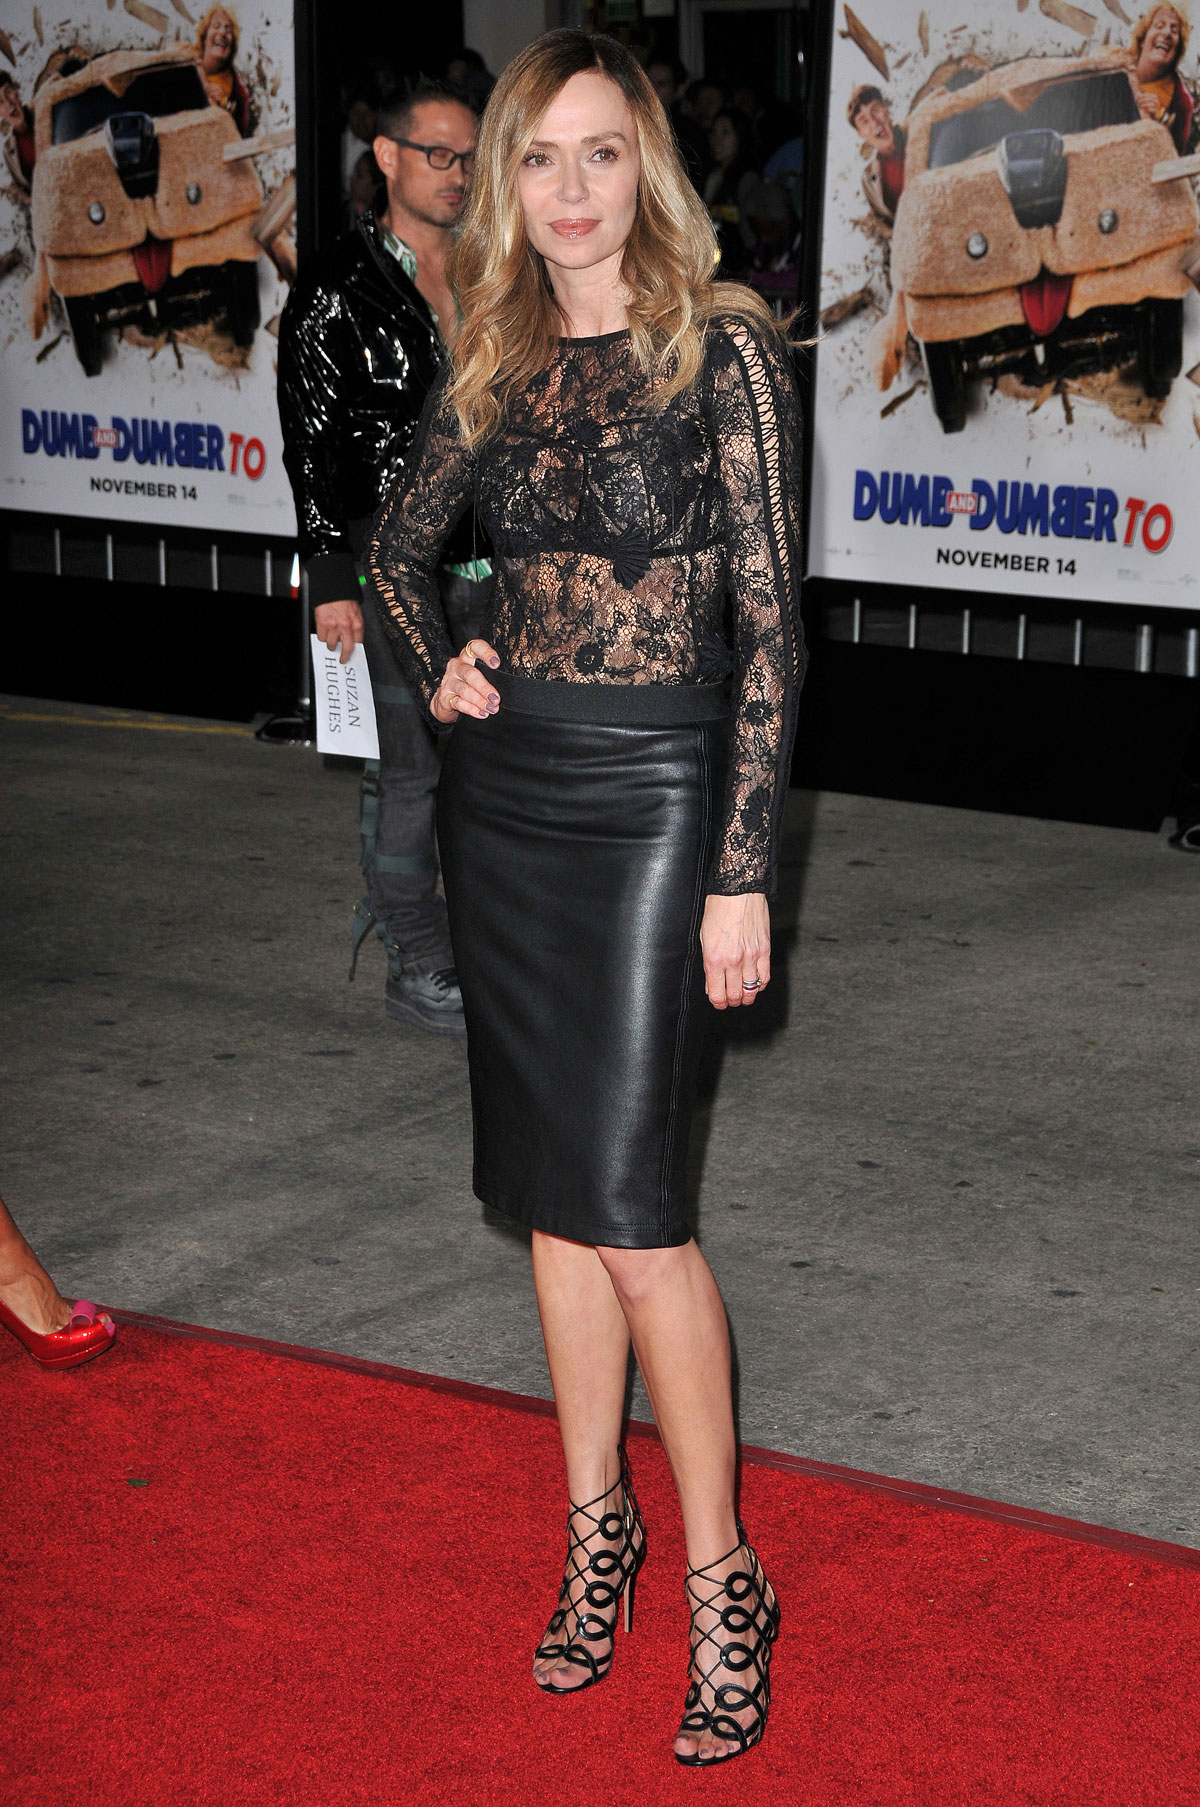 Vanessa Angel attends Los Angeles premiere of Dumb And Dumber To